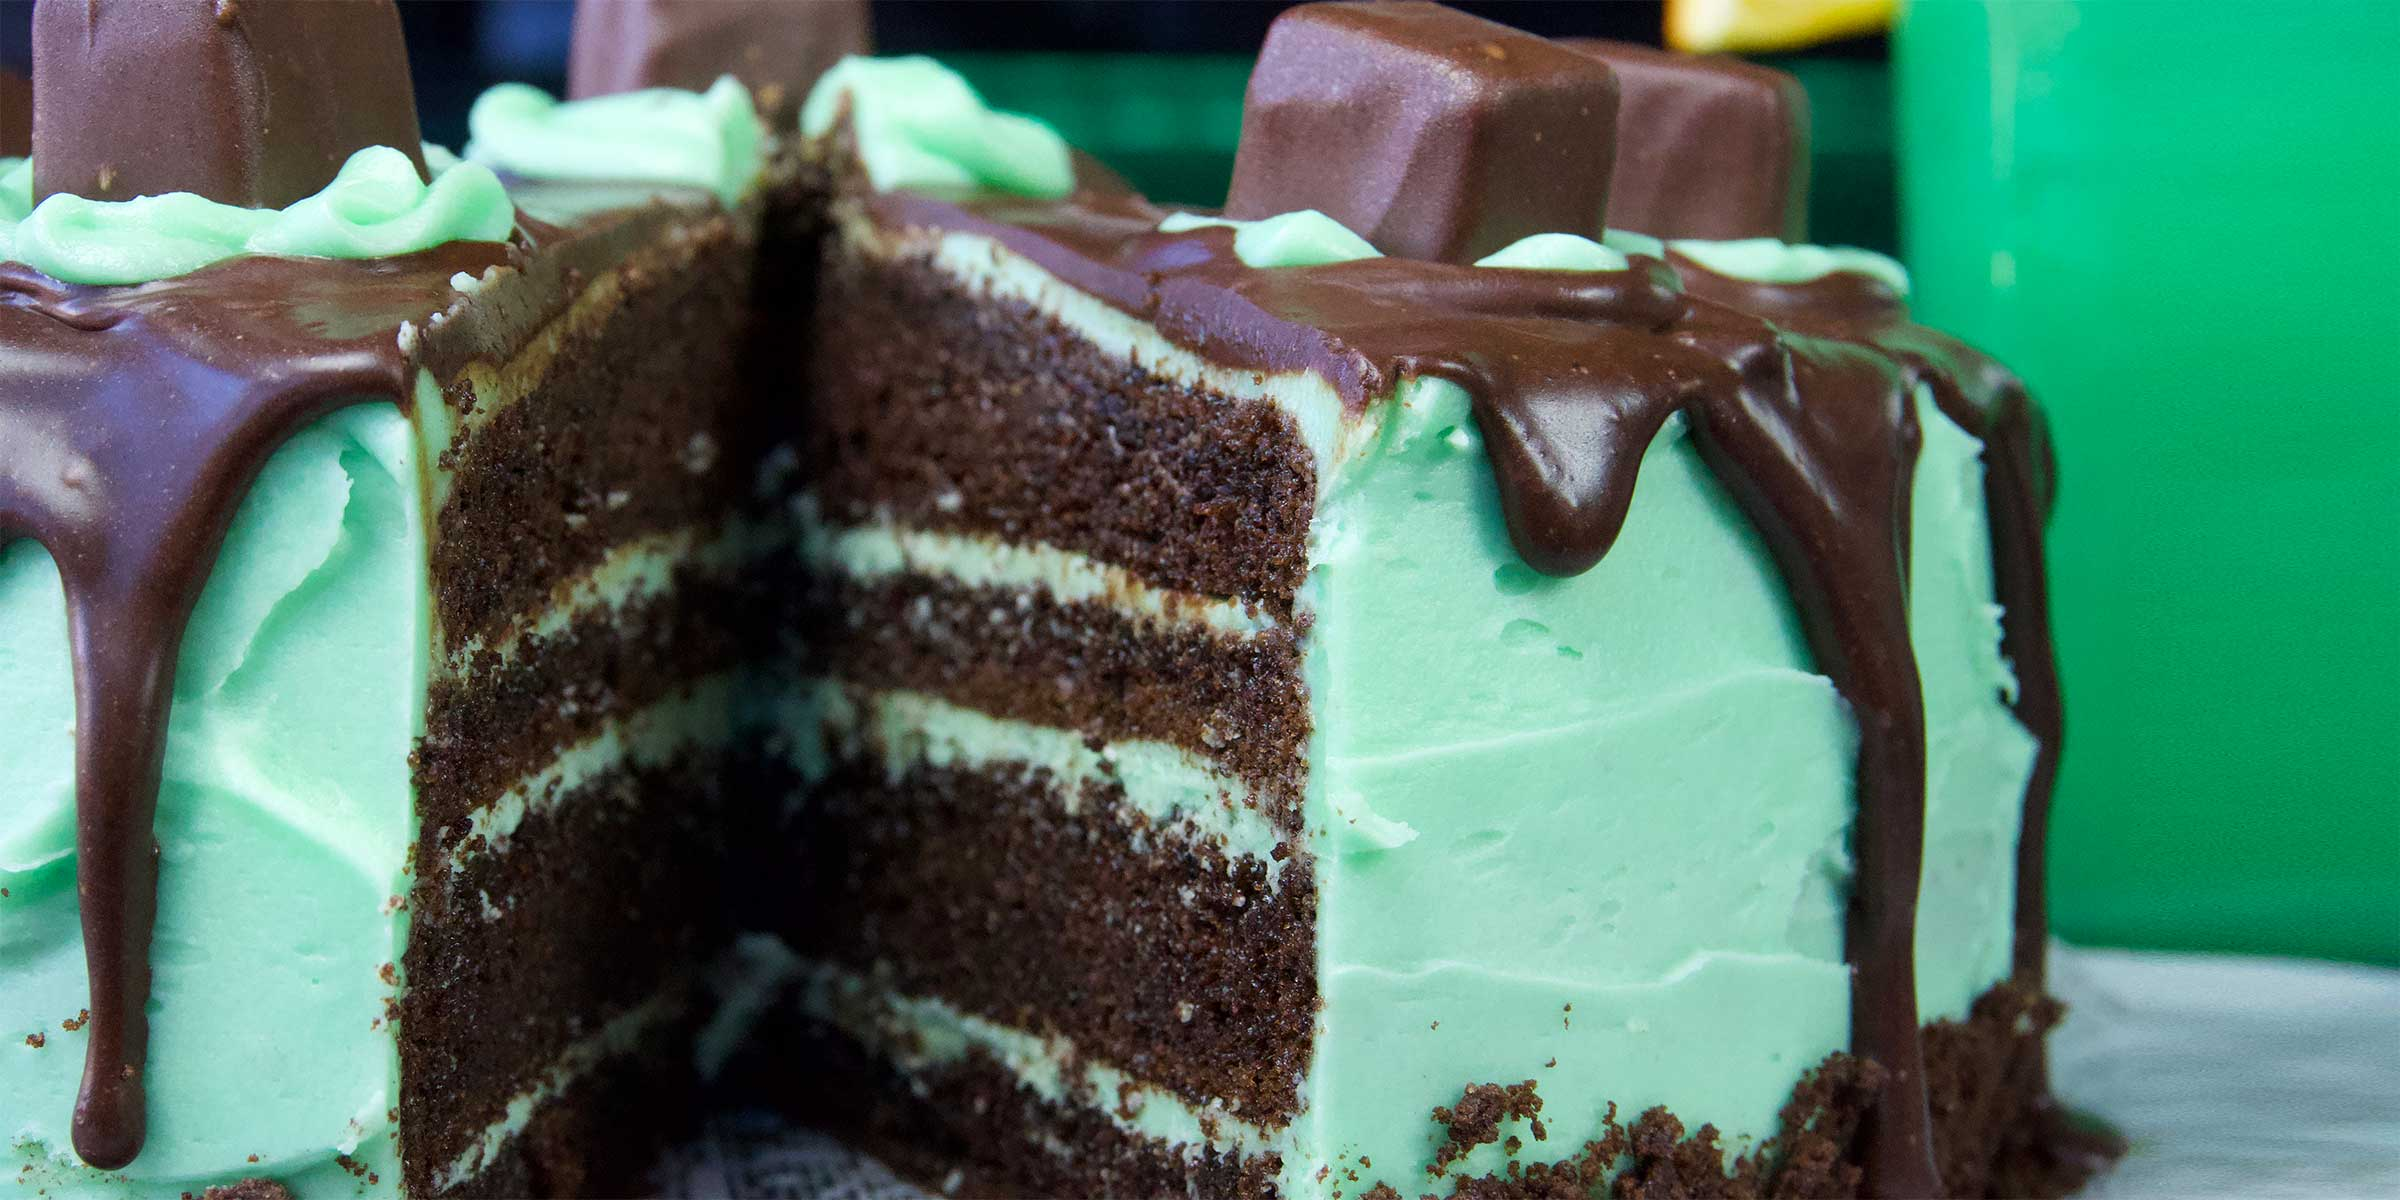 March Specials - Frango Mint Chocolate Cake